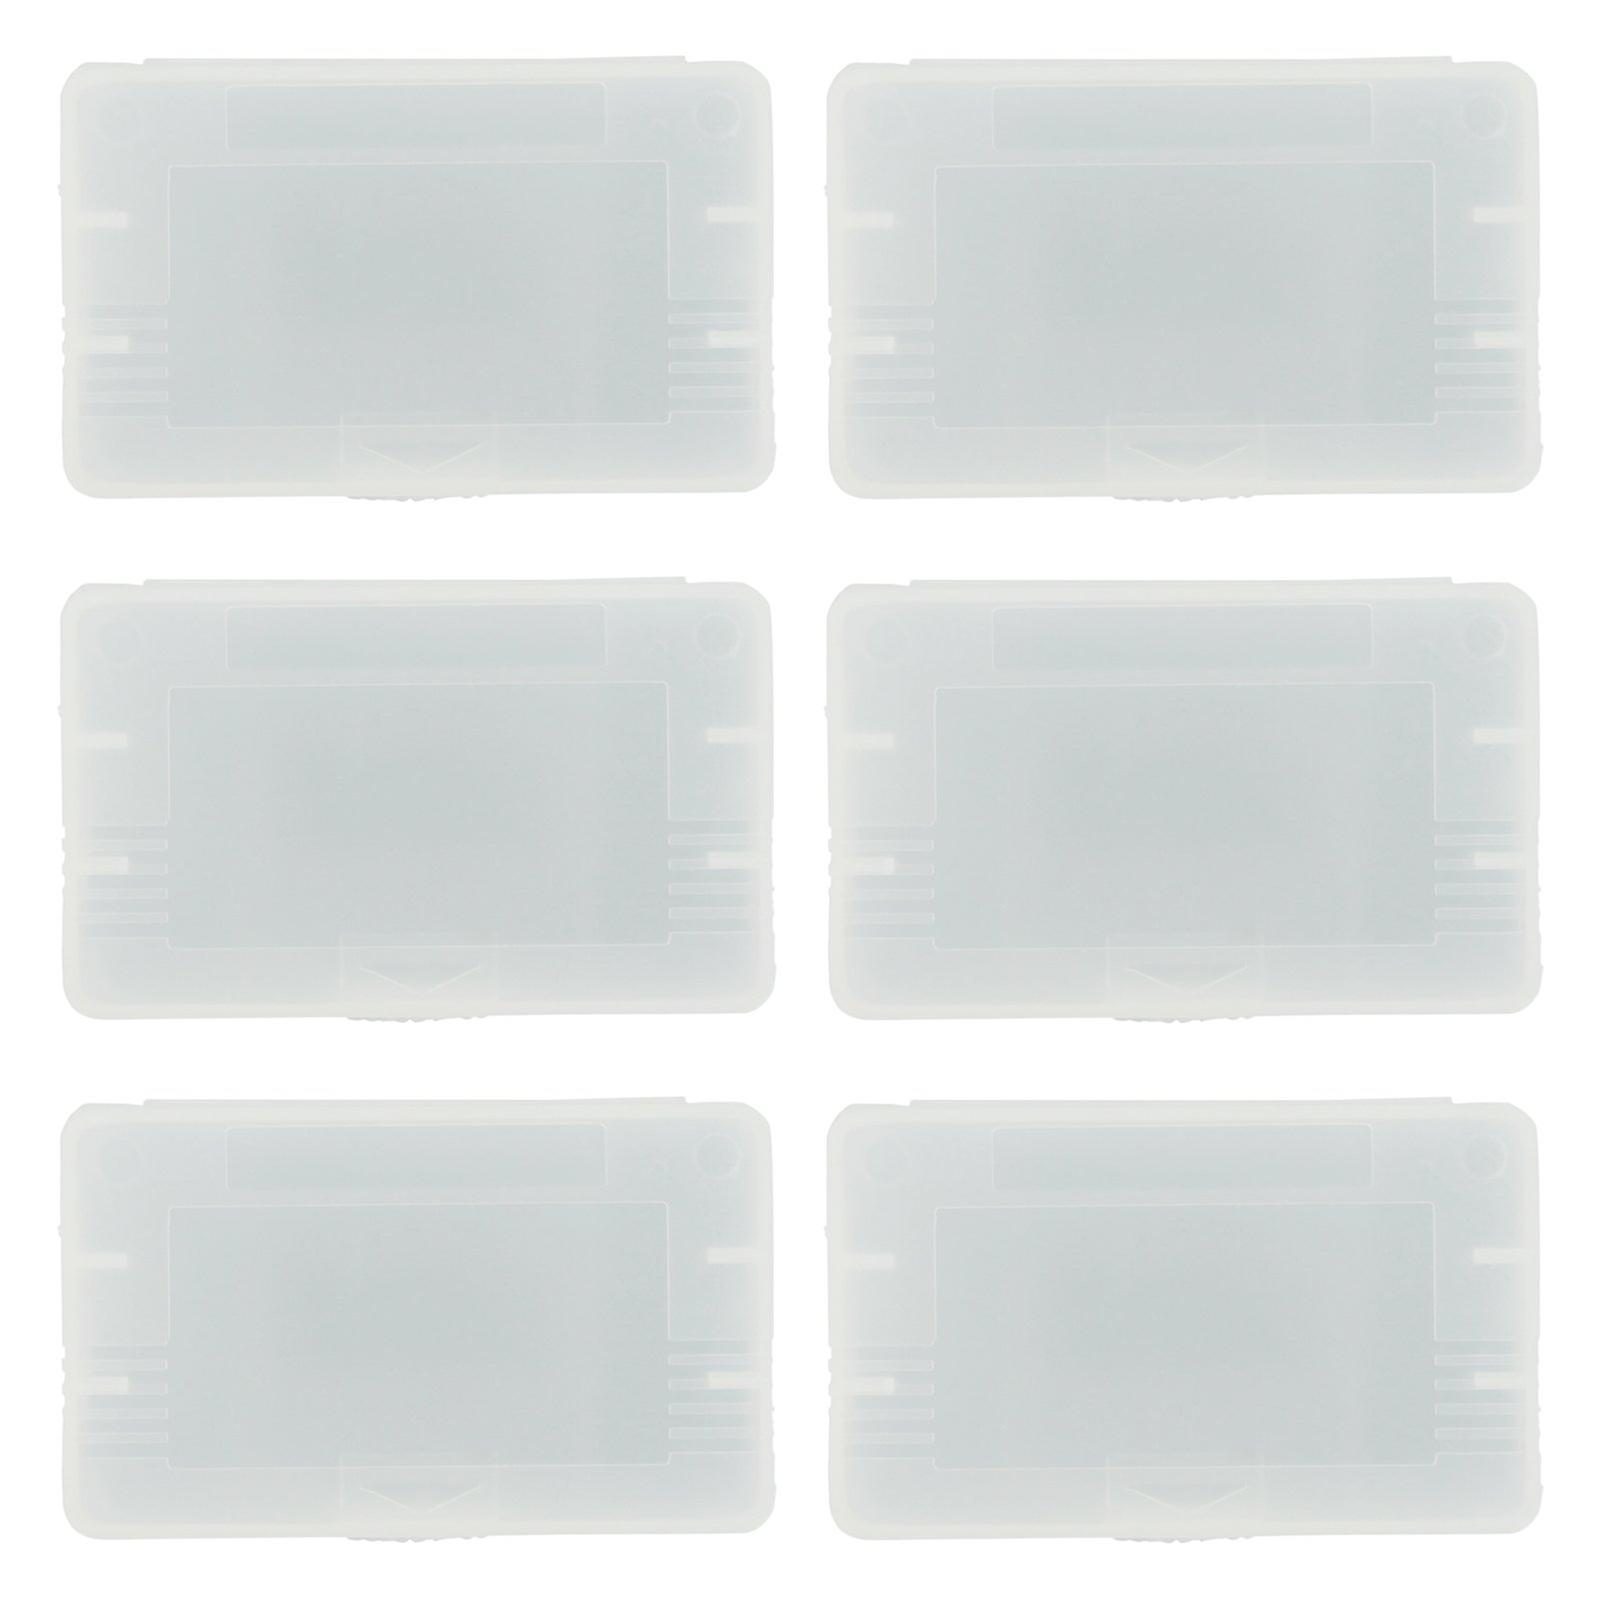 Single game storage case for nintendo game boy advance gba sp - 6 pack clear